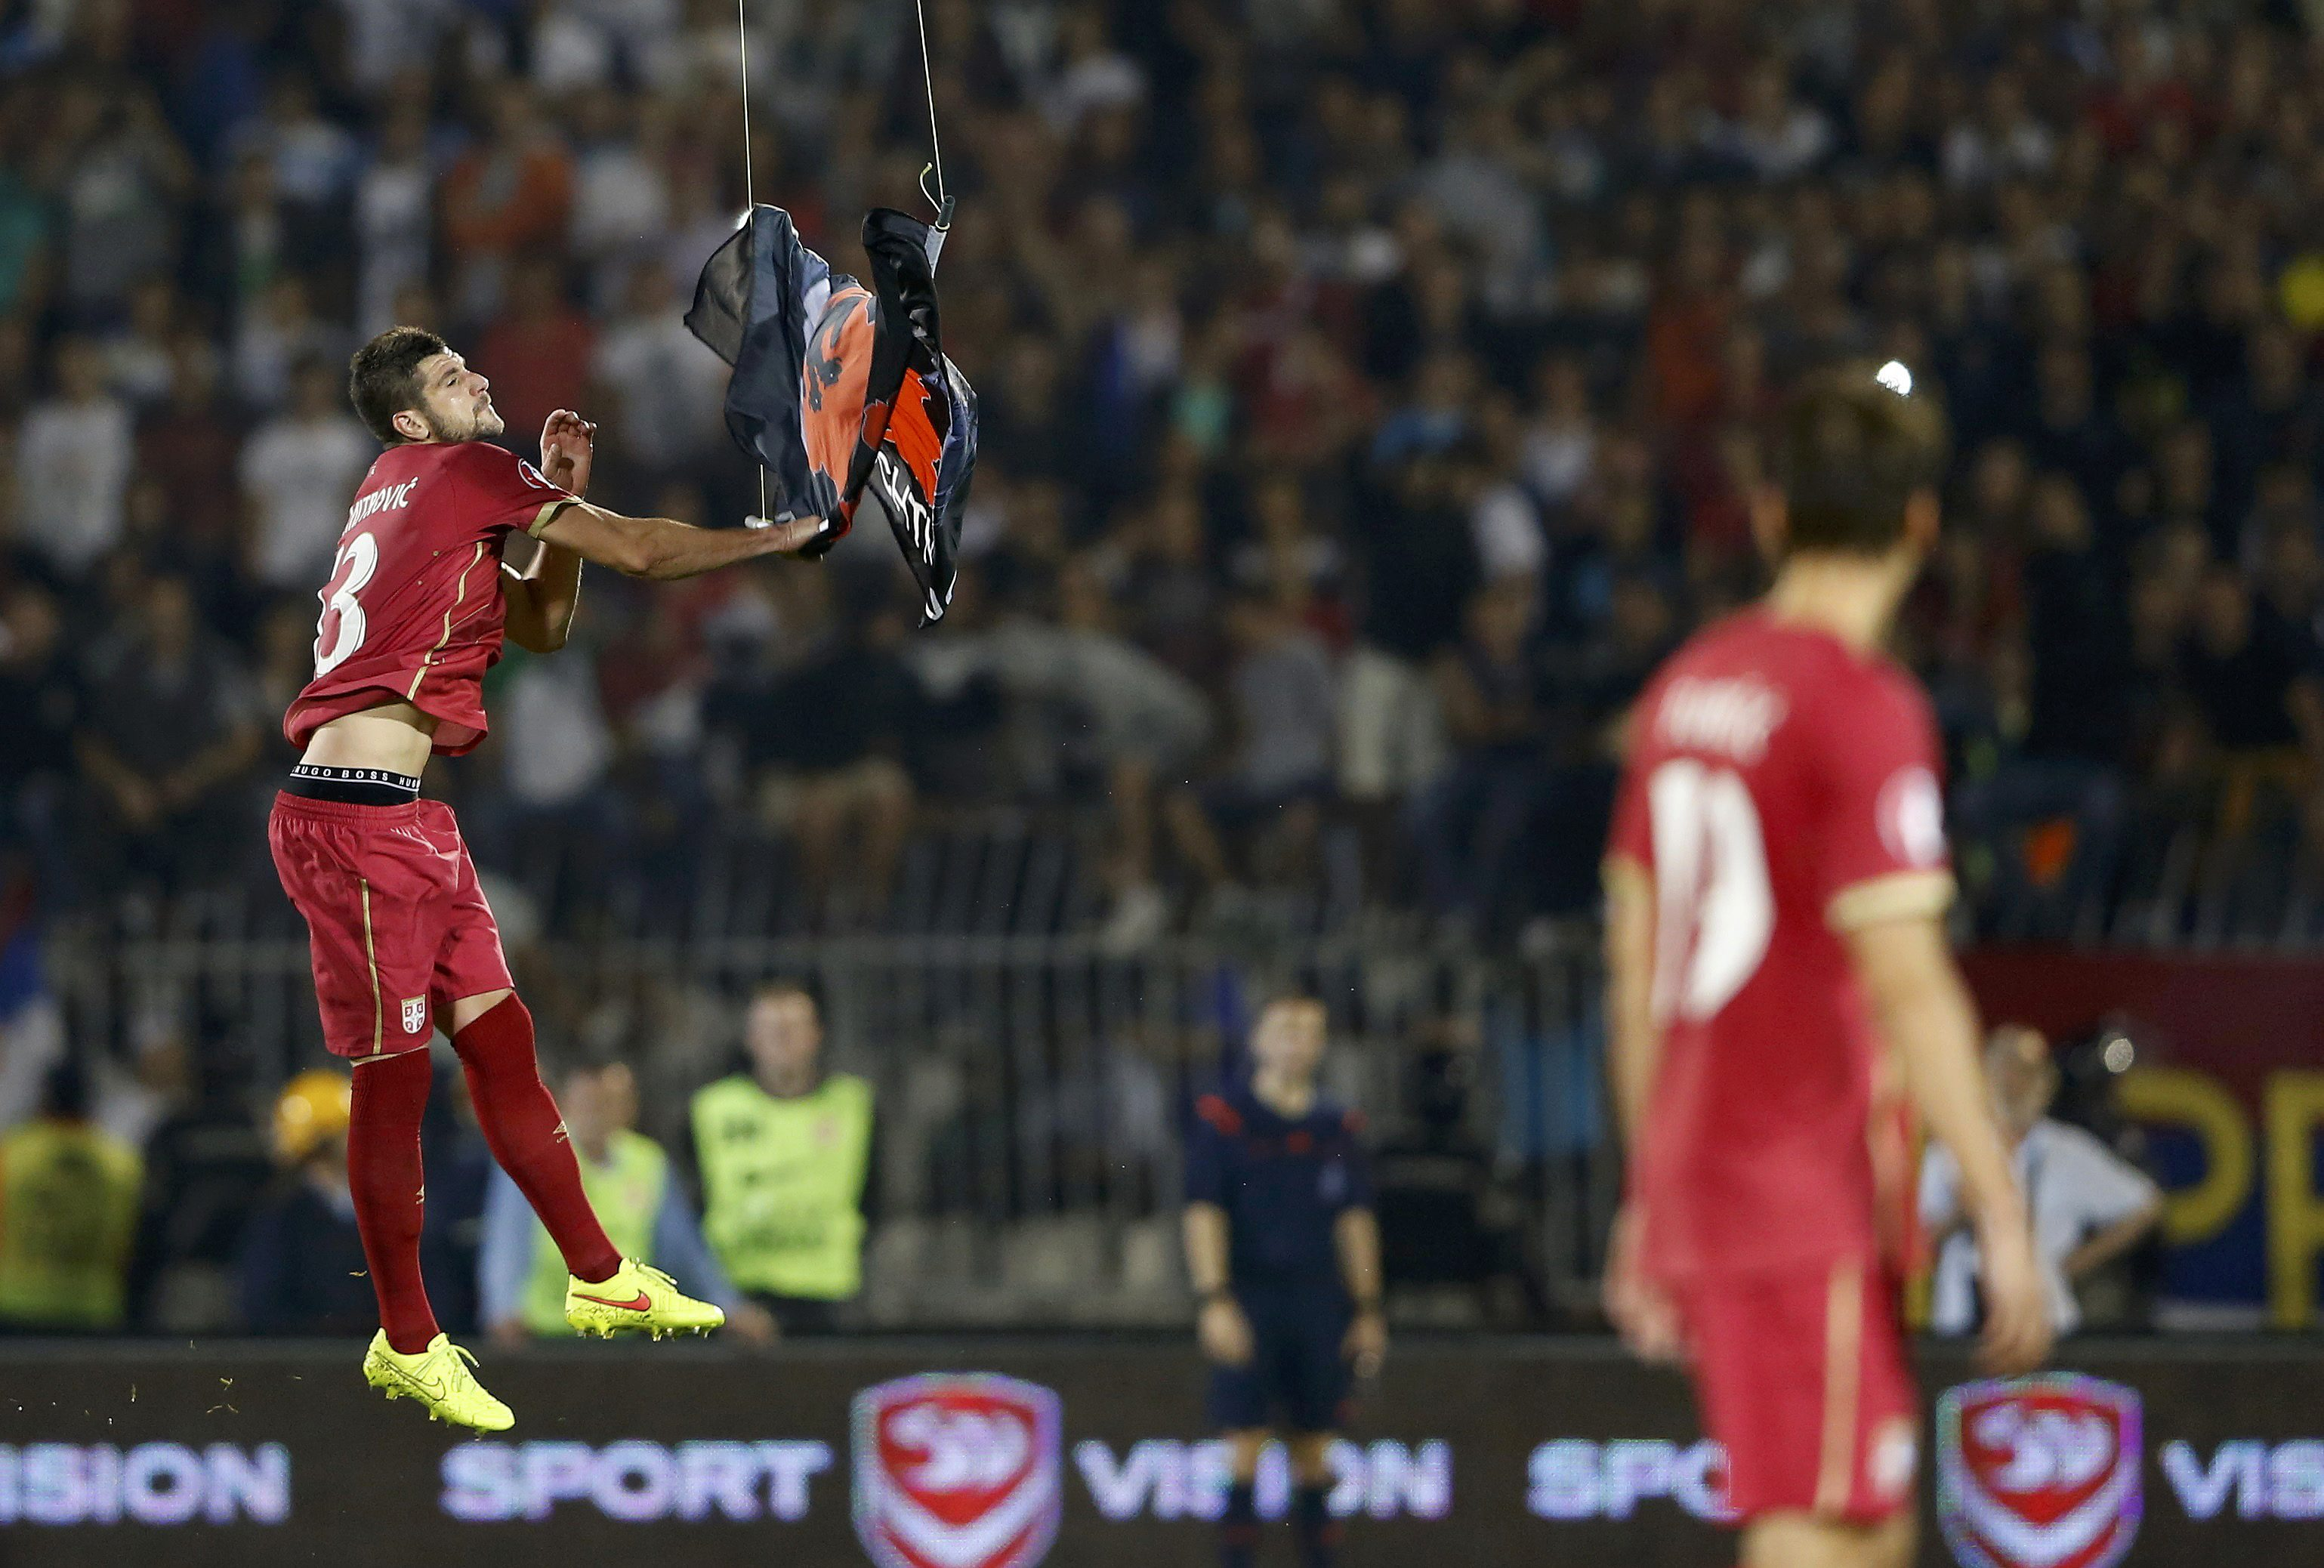 Serbia-Albania match suspended after flag-carrying sparks brawl   For The  Win